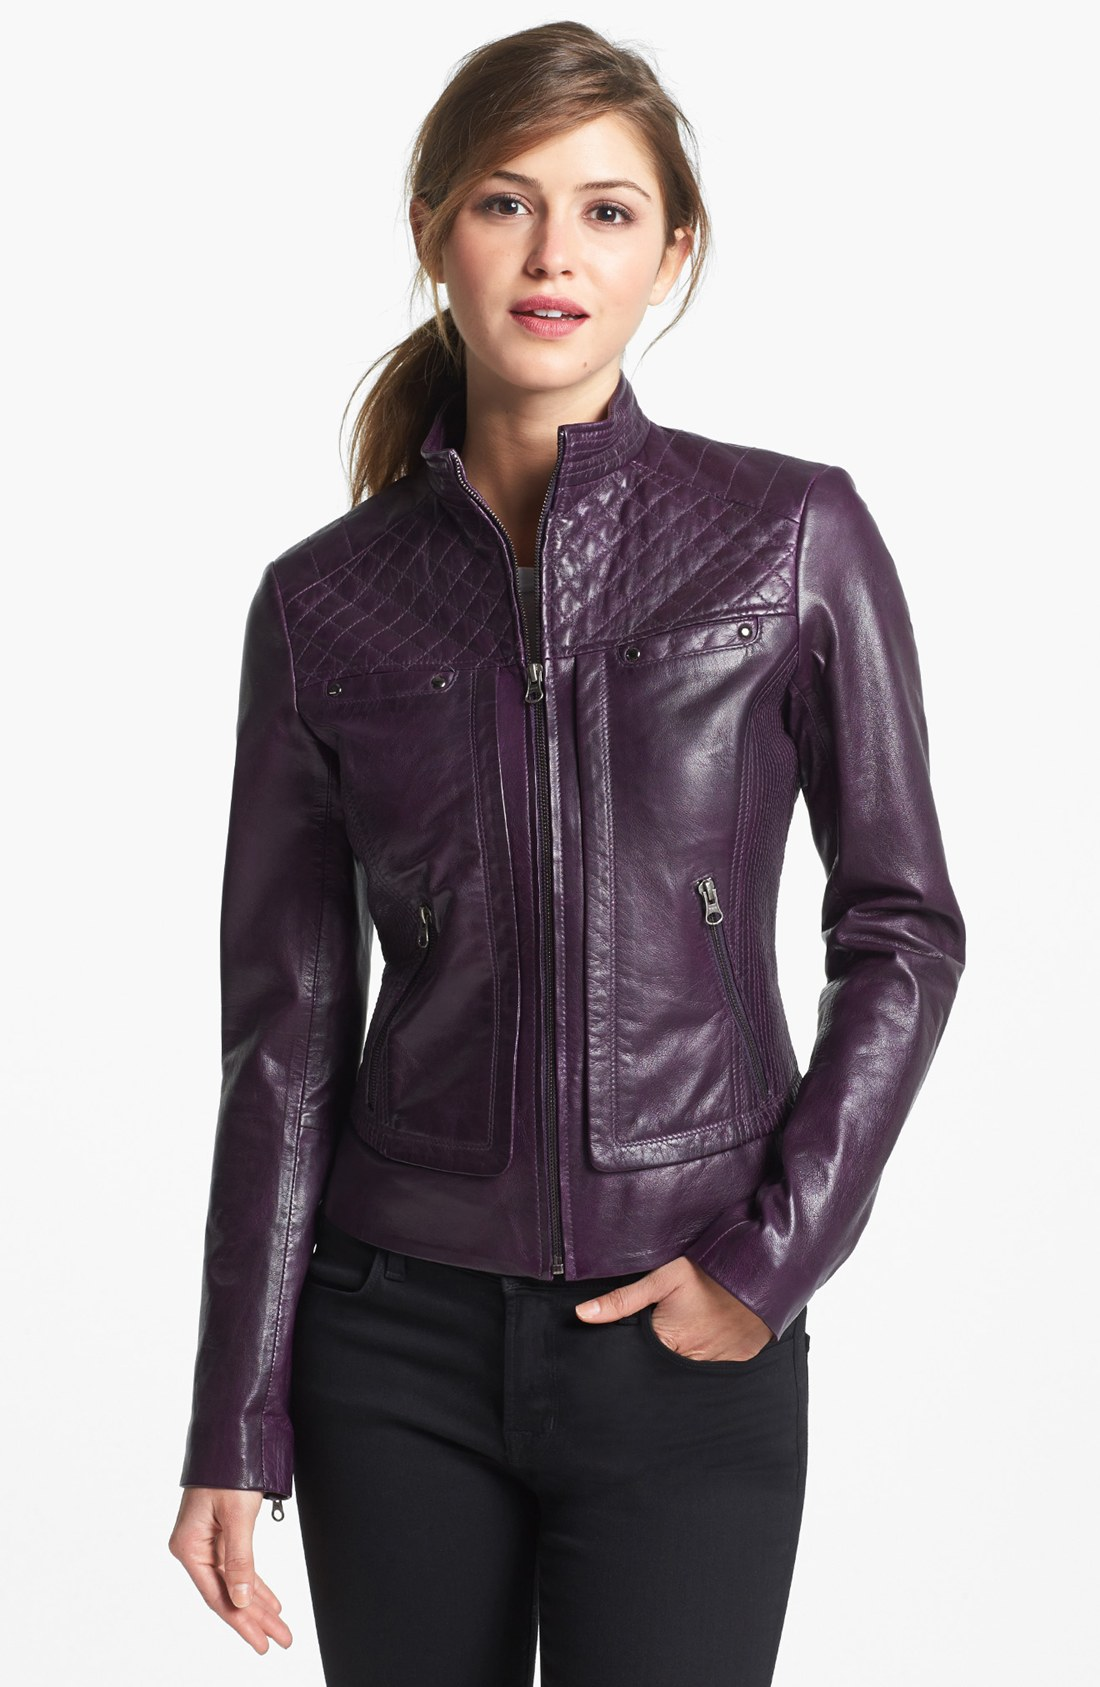 leather jackets women 2016-short-leather-jackets-for-women cffdige